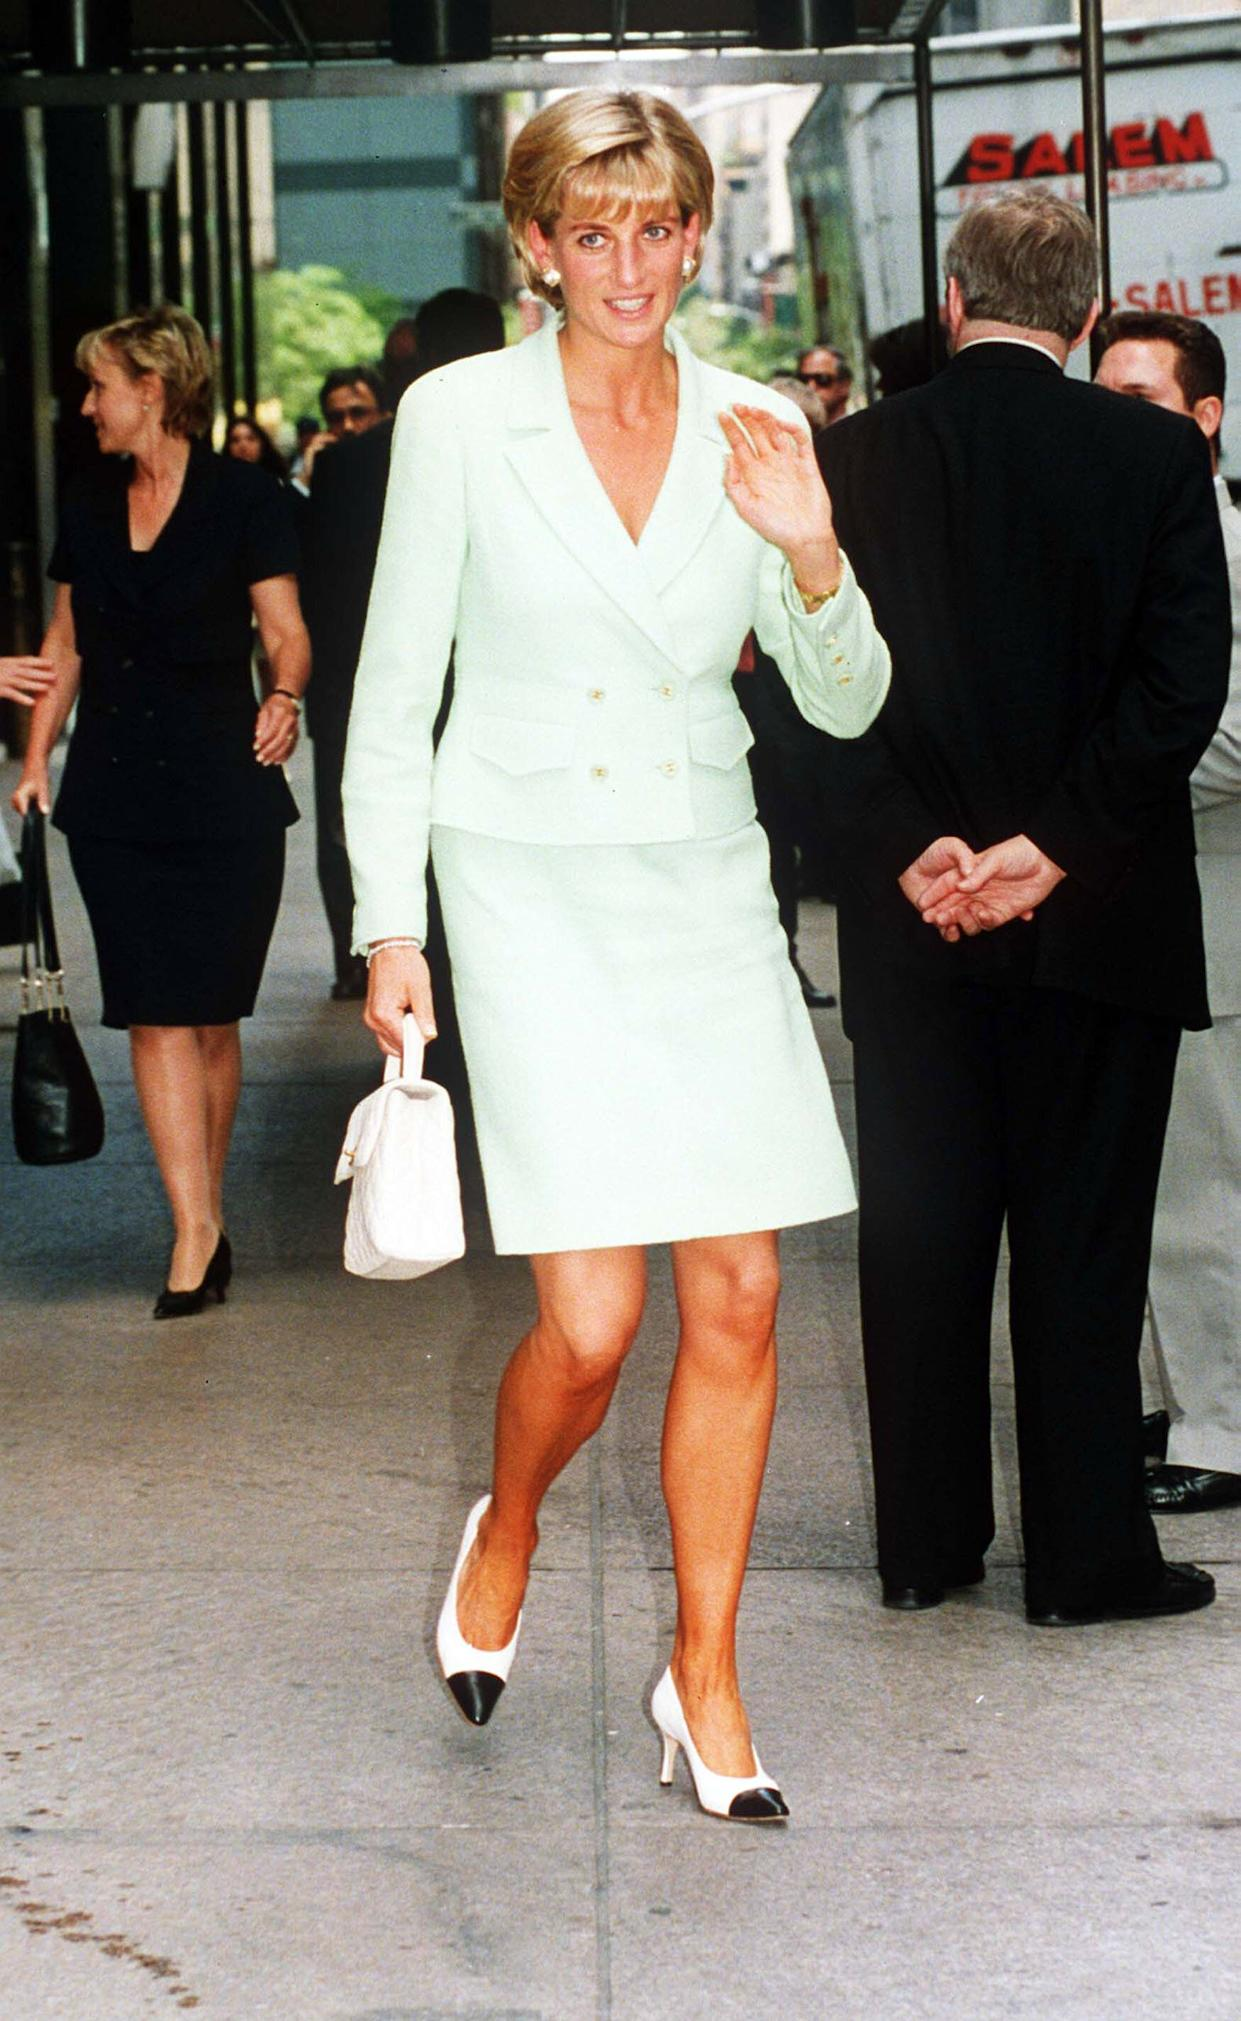 Princess Diana pictured in New York in July 1997. [Photo: PA]